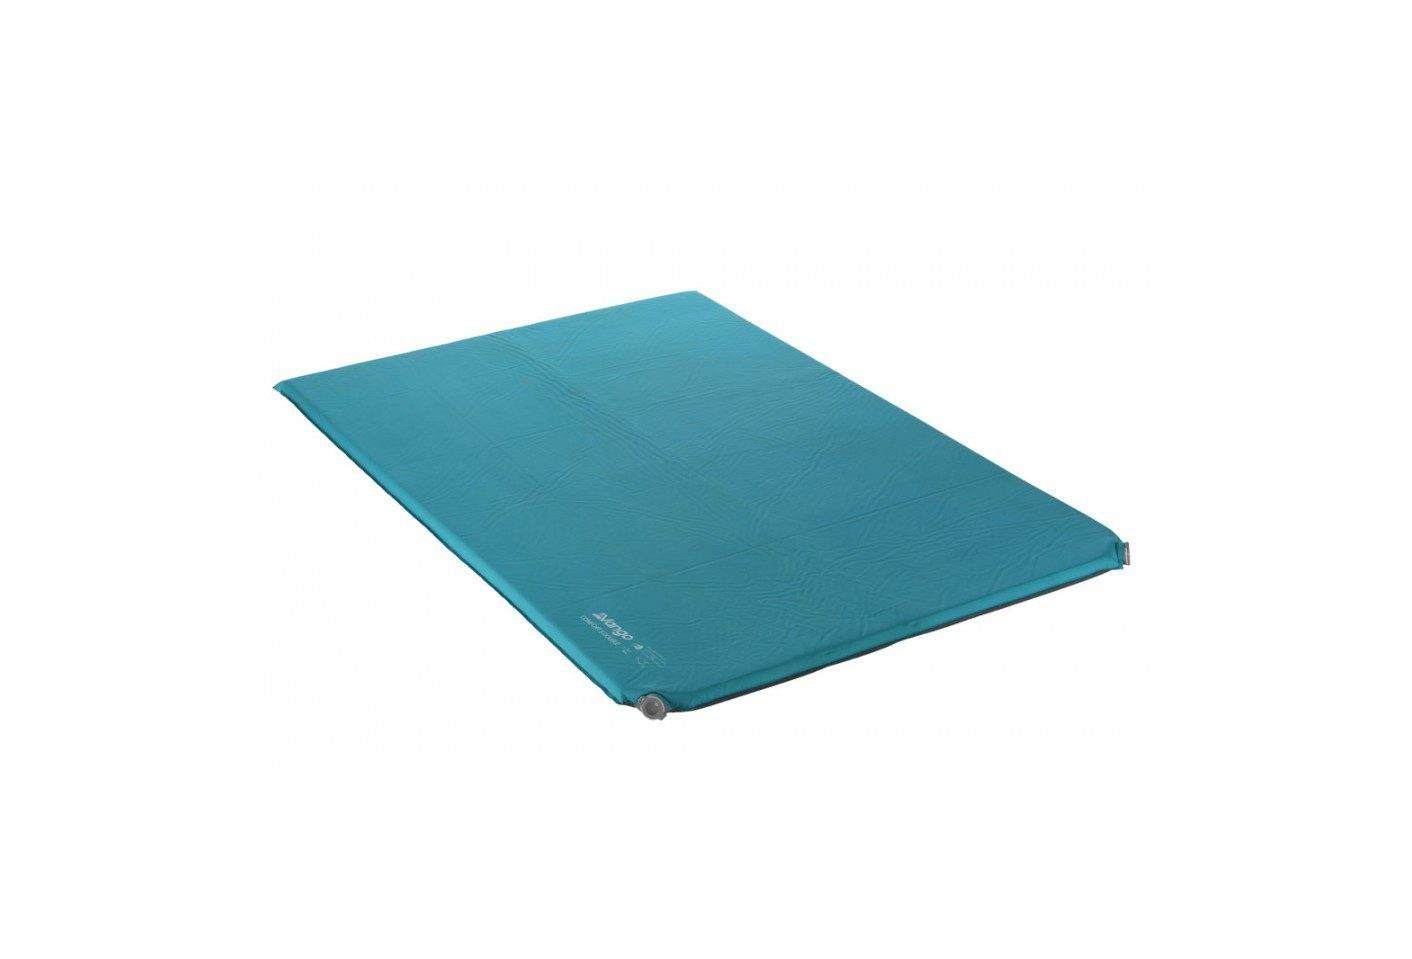 Vango Comfort 5cm Double self inflating mat